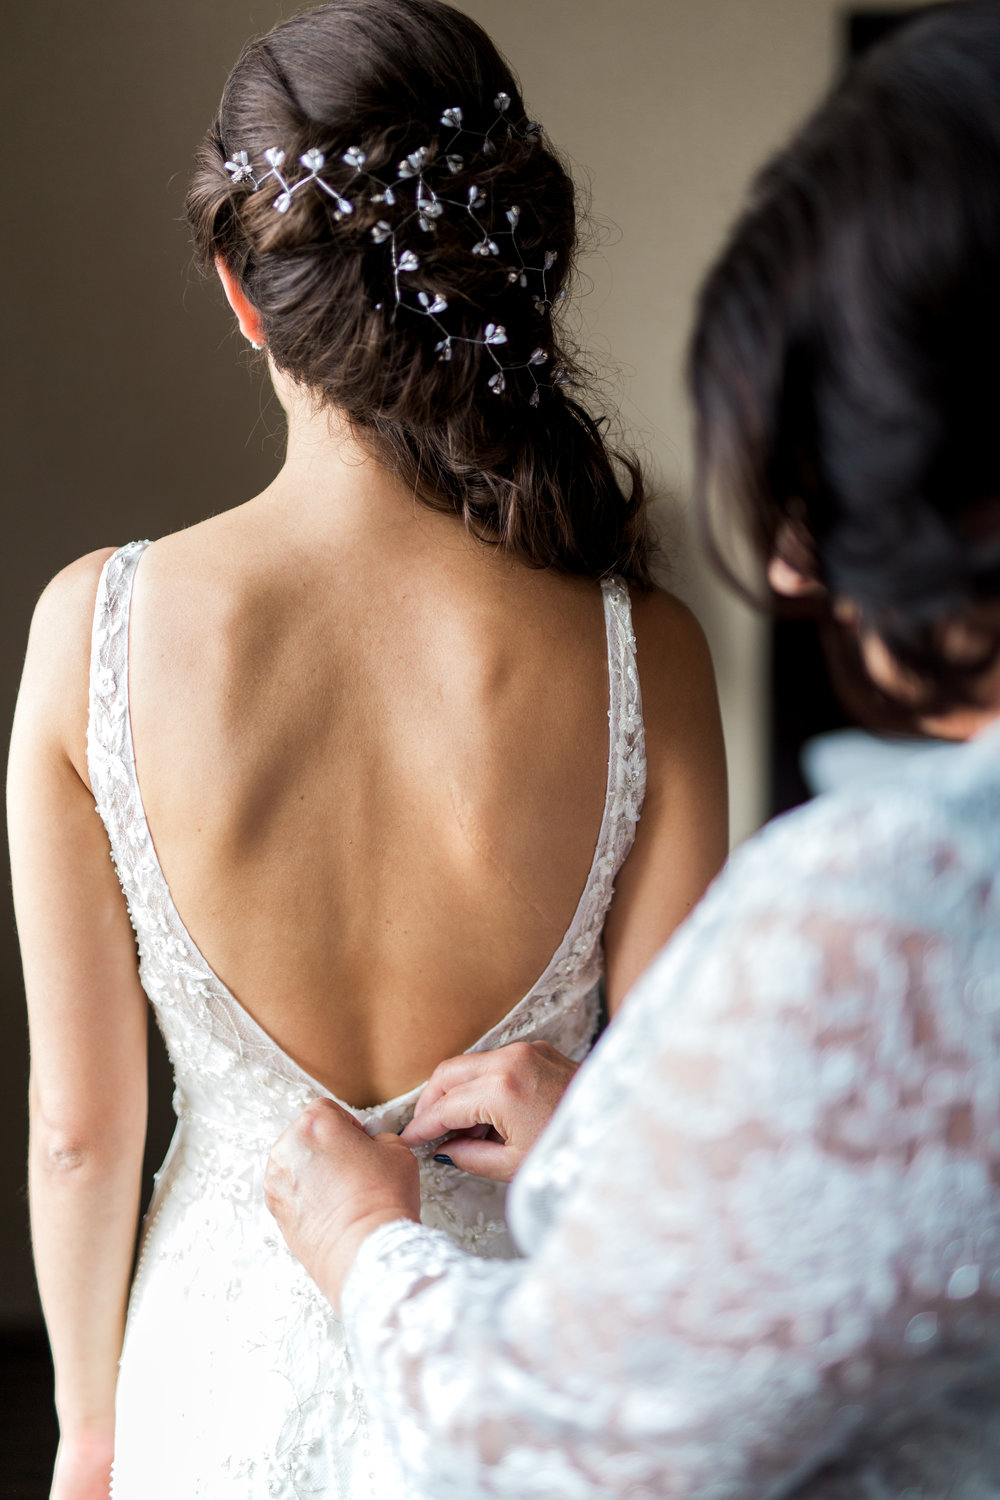 Amir-Golbazi-Danielle-Giroux-Photography_Toronto-Wedding_Cedarwood_Rachel-Paul_086.jpg